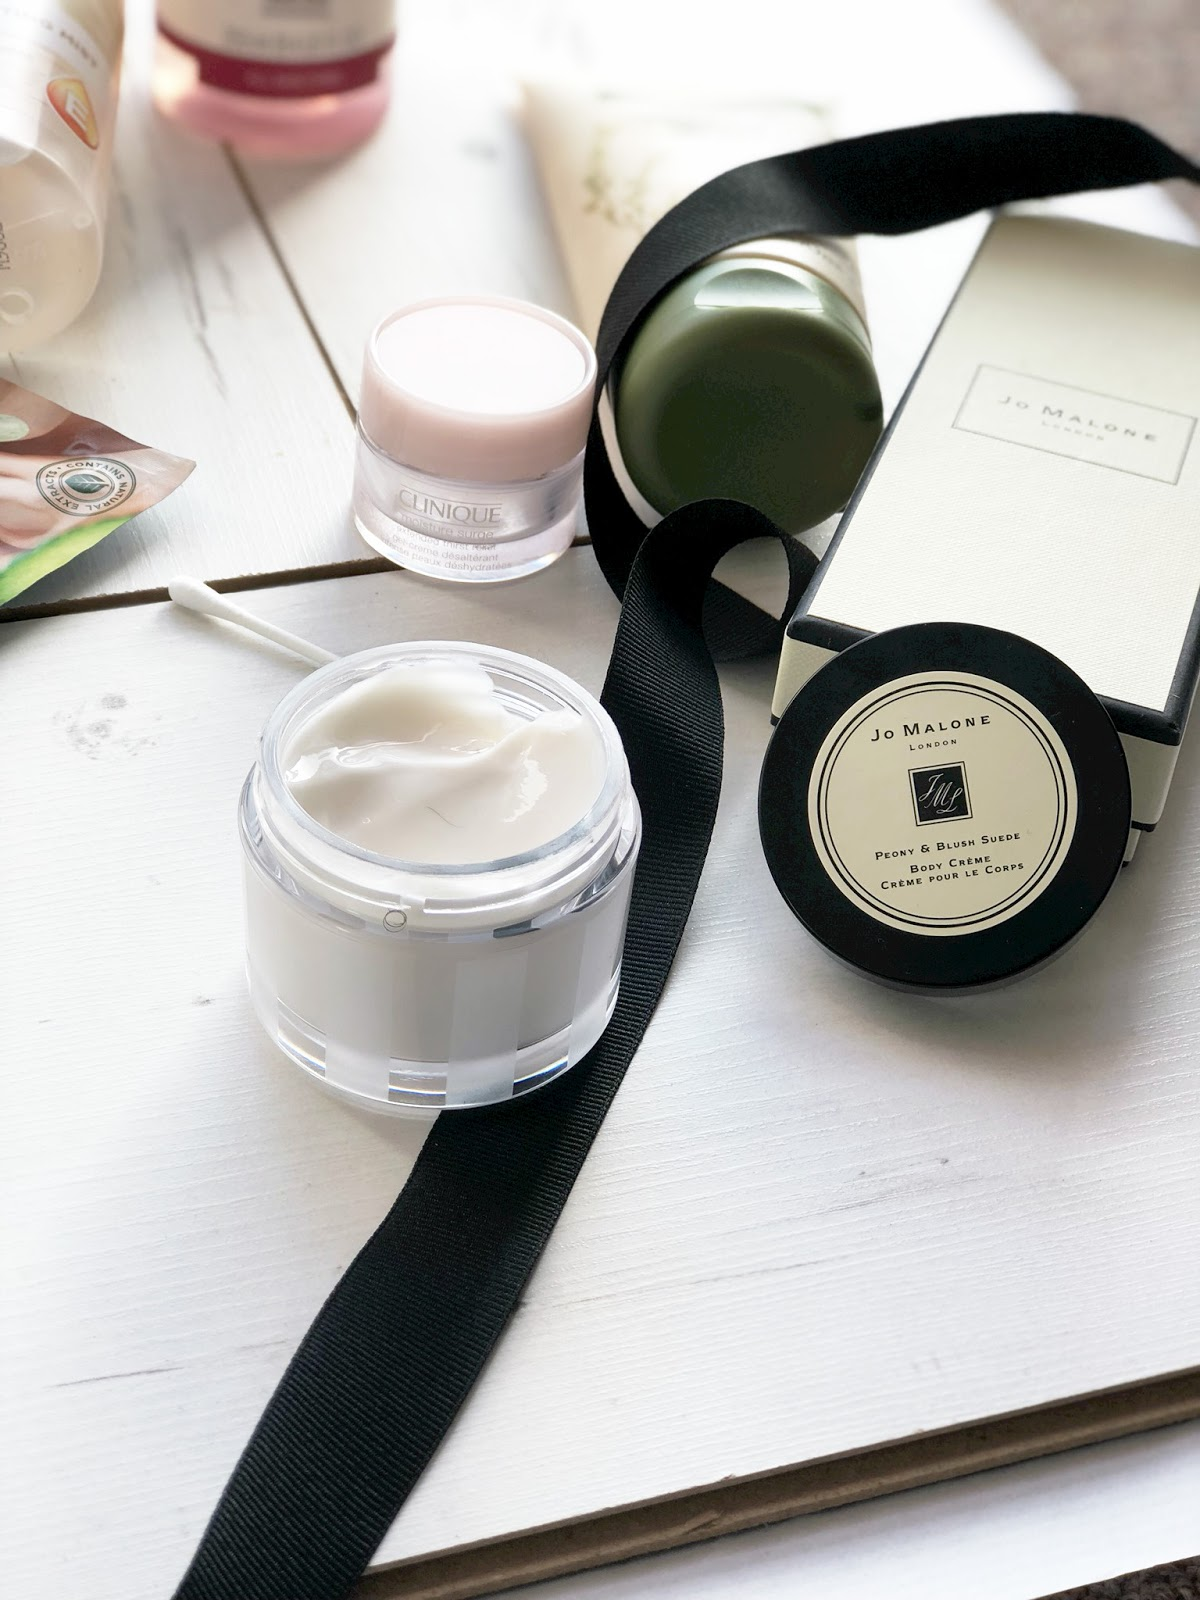 My Current Skincare Favourites - Jo Malone